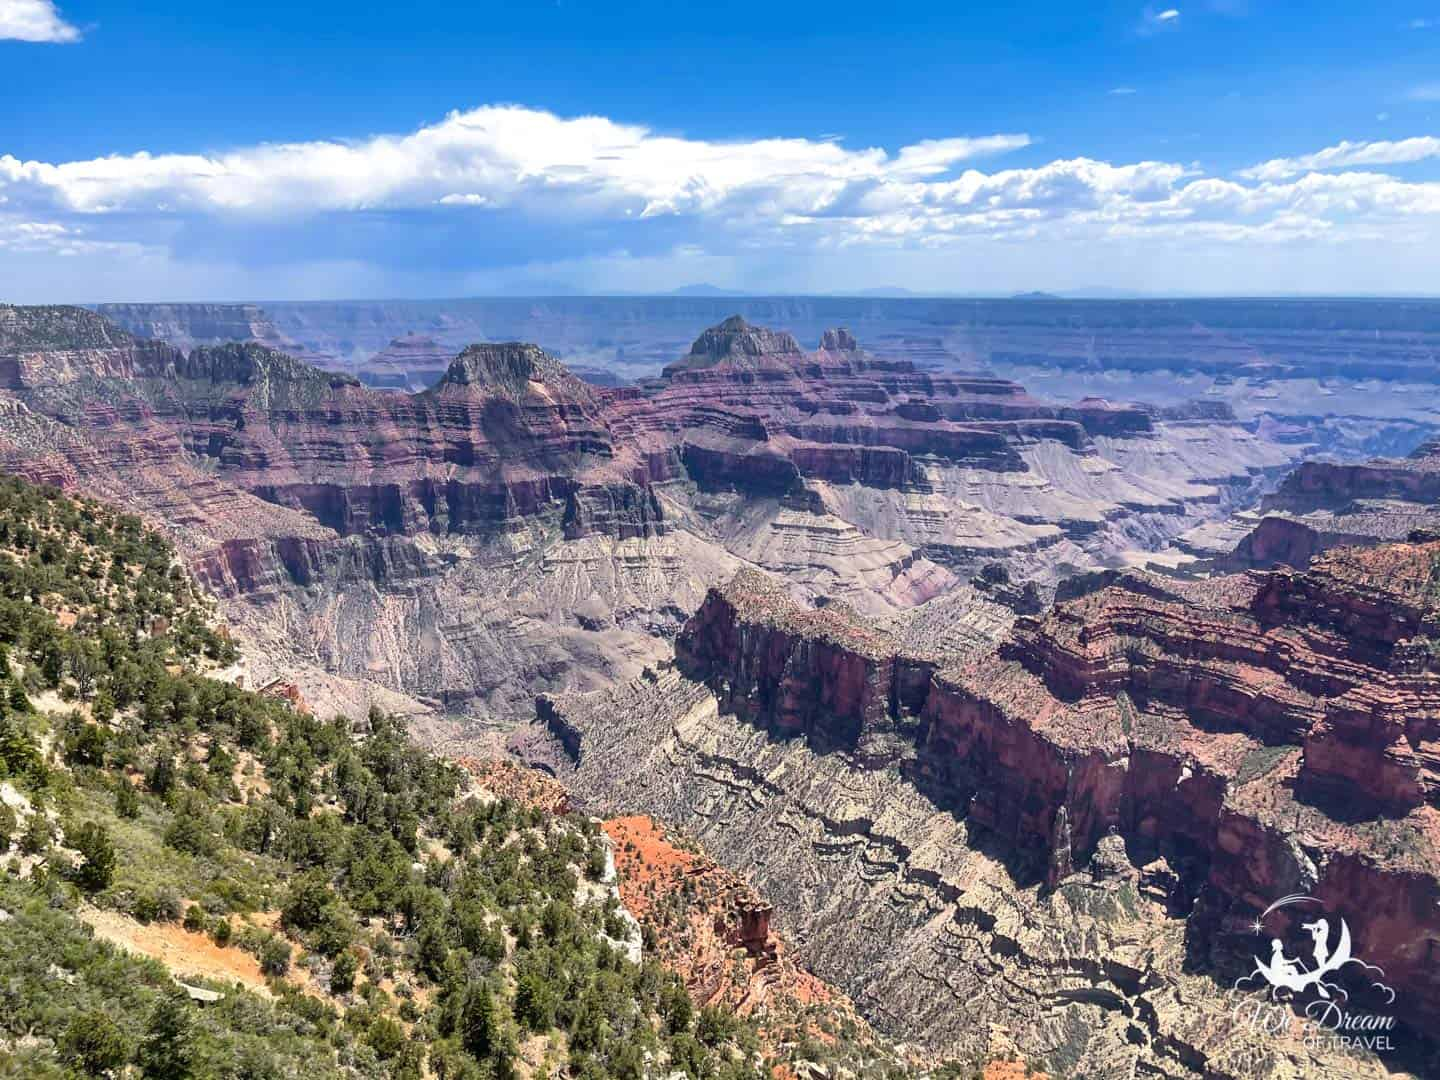 Make time to enjoy sweeping views of the Grand Canyon from Bright Angel with a drink or fork in hand.